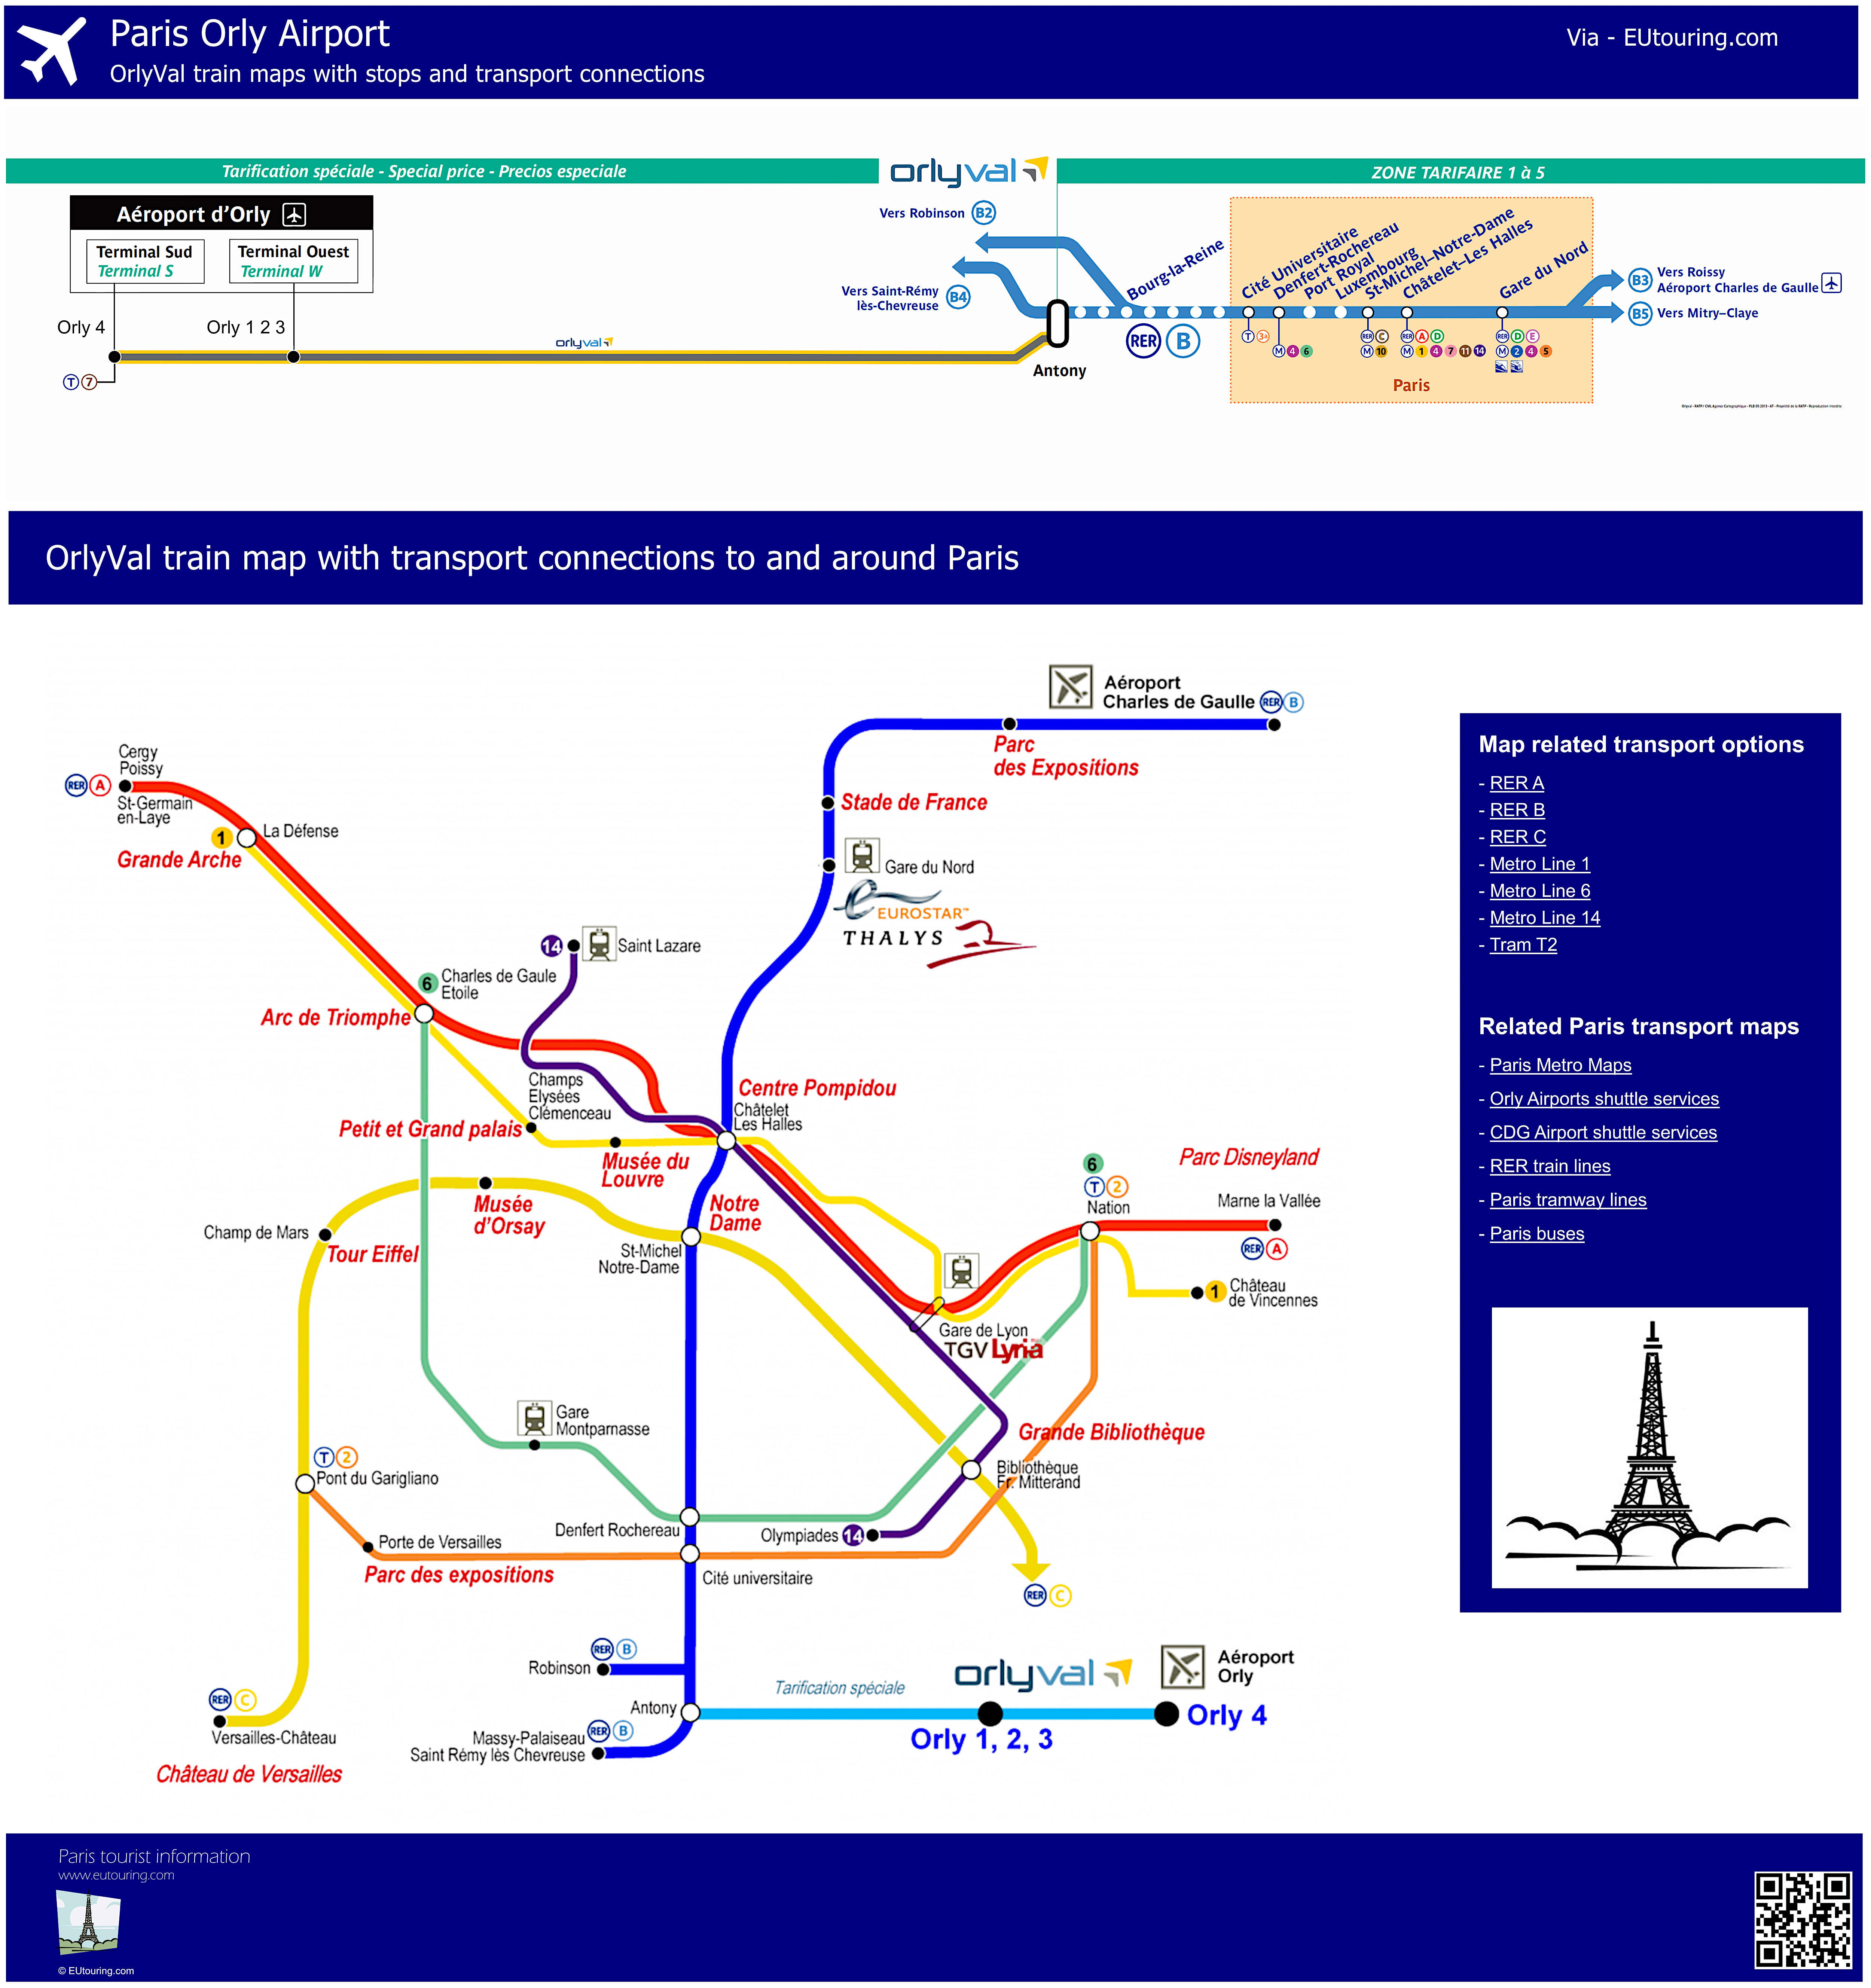 Aeroporto Orly : Public transport and bus shuttle services for orly airport in paris